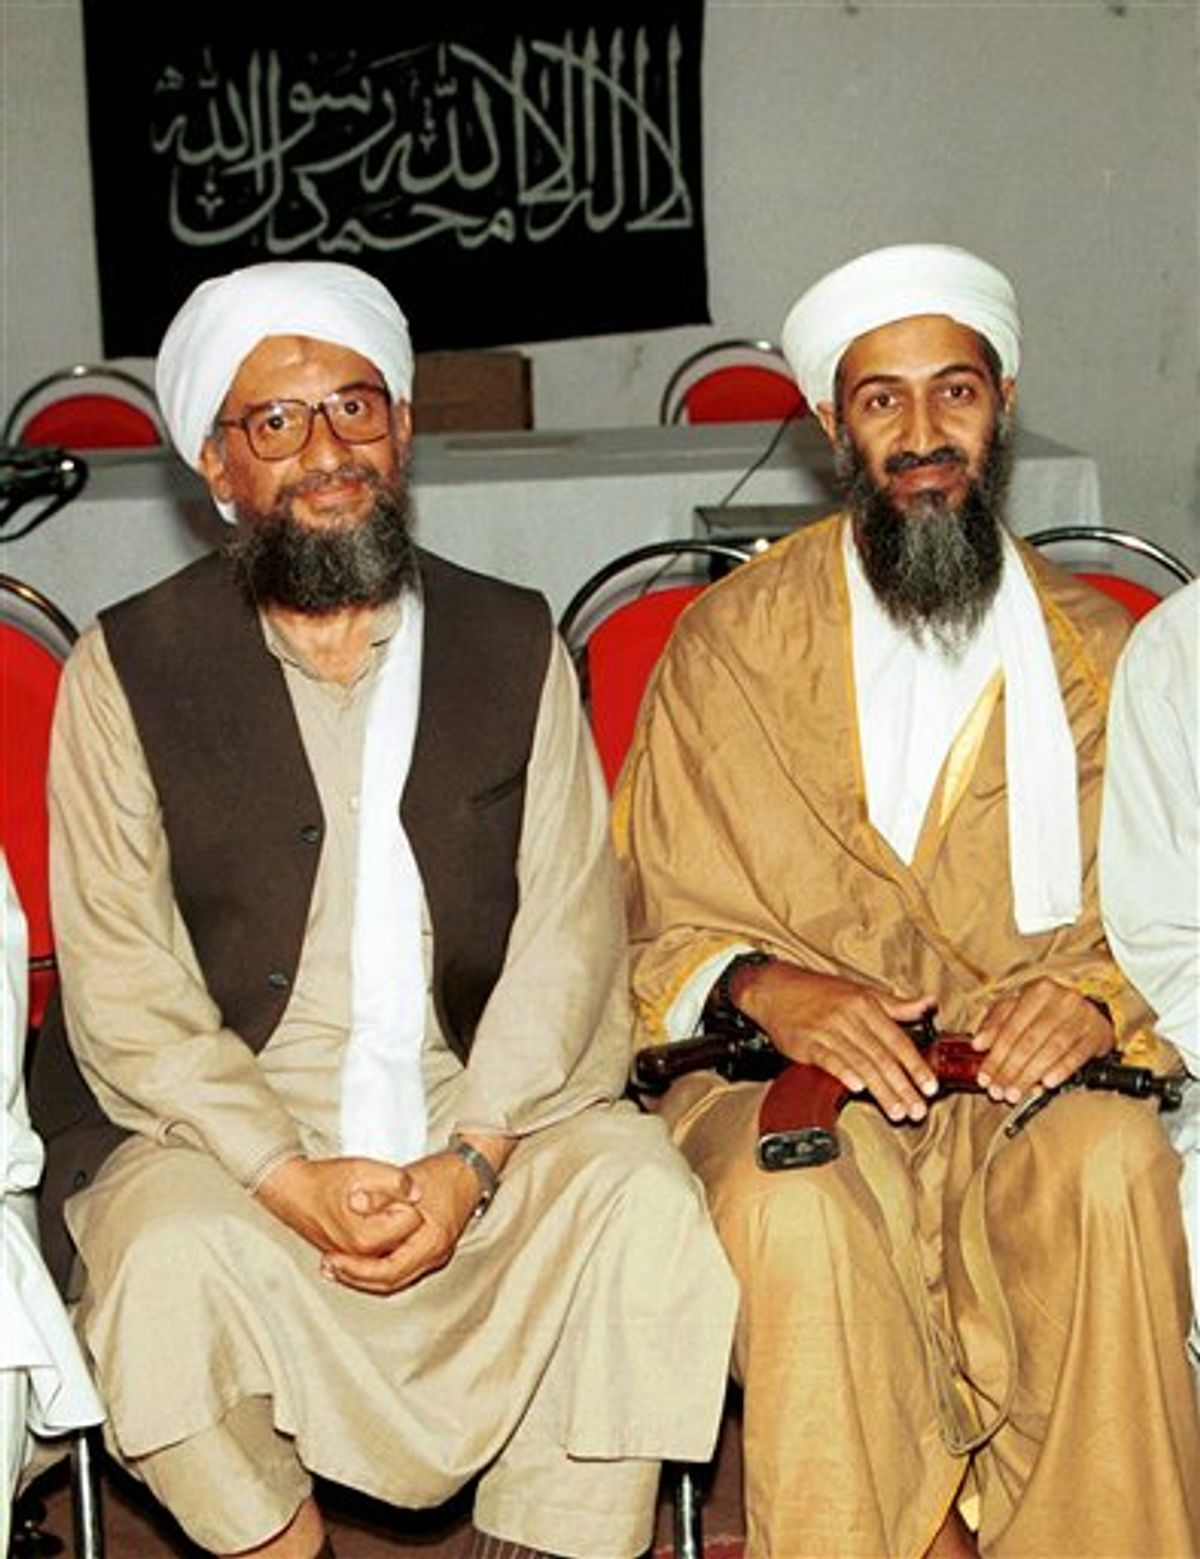 FILE - In this 1998 file photo made available Friday, March 19, 2004, Ayman al-Zawahri, left, poses for a photograph with Osama bin Laden, right, in Khost, Afghanistan. Al-Qaida has selected its longtime No. 2, Ayman al-Zawahri, to succeed Osama bin Laden following last month's U.S. commando raid that killed the terror leader, according to a statement posted Thursday, June 16, 2011 on a website affiliated with the network. (AP Photo/Mazhar Ali Khan, File) (AP)